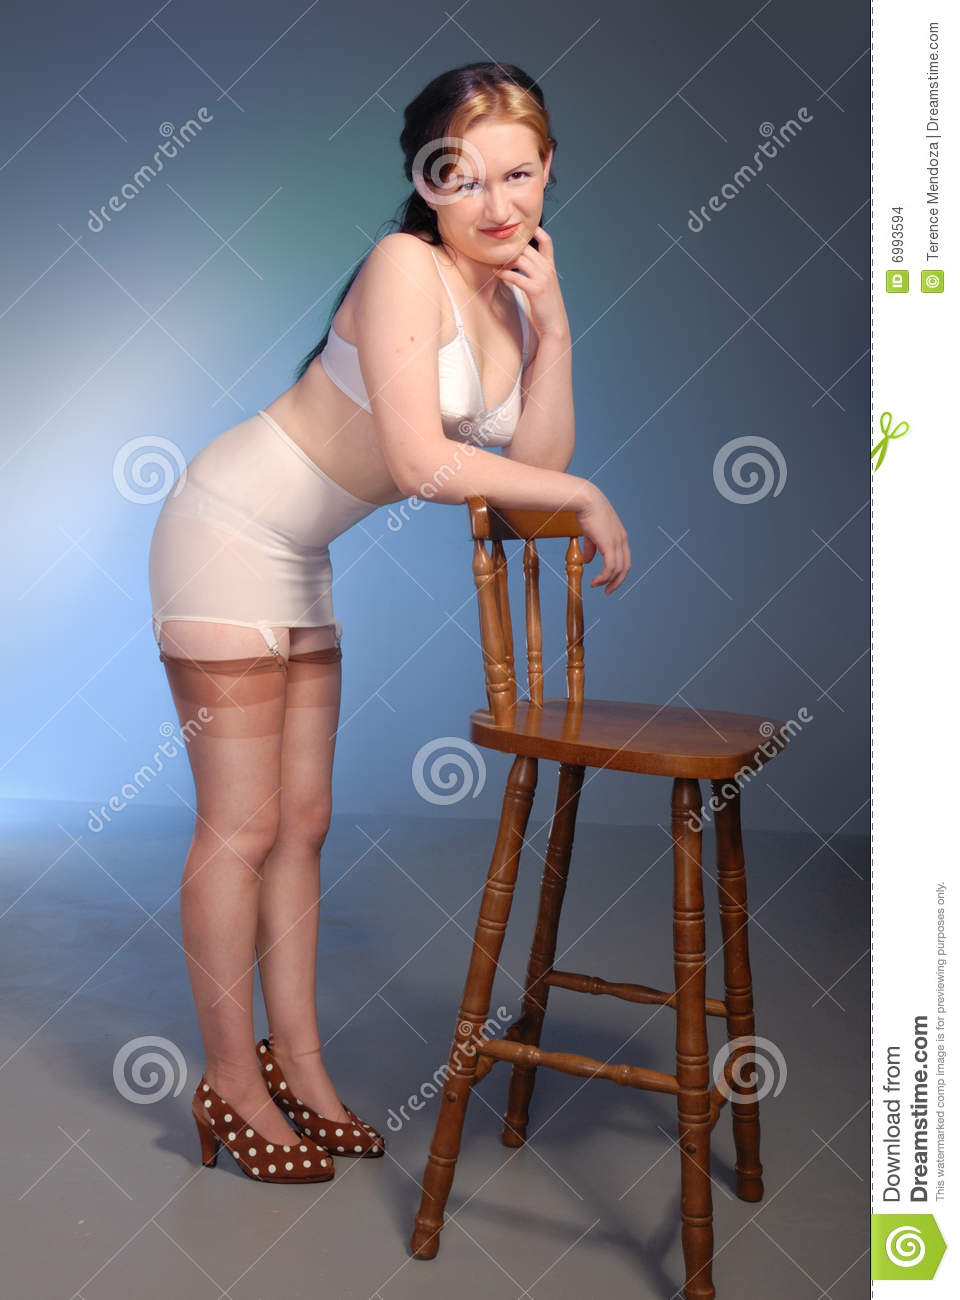 Women in girdles and stockings